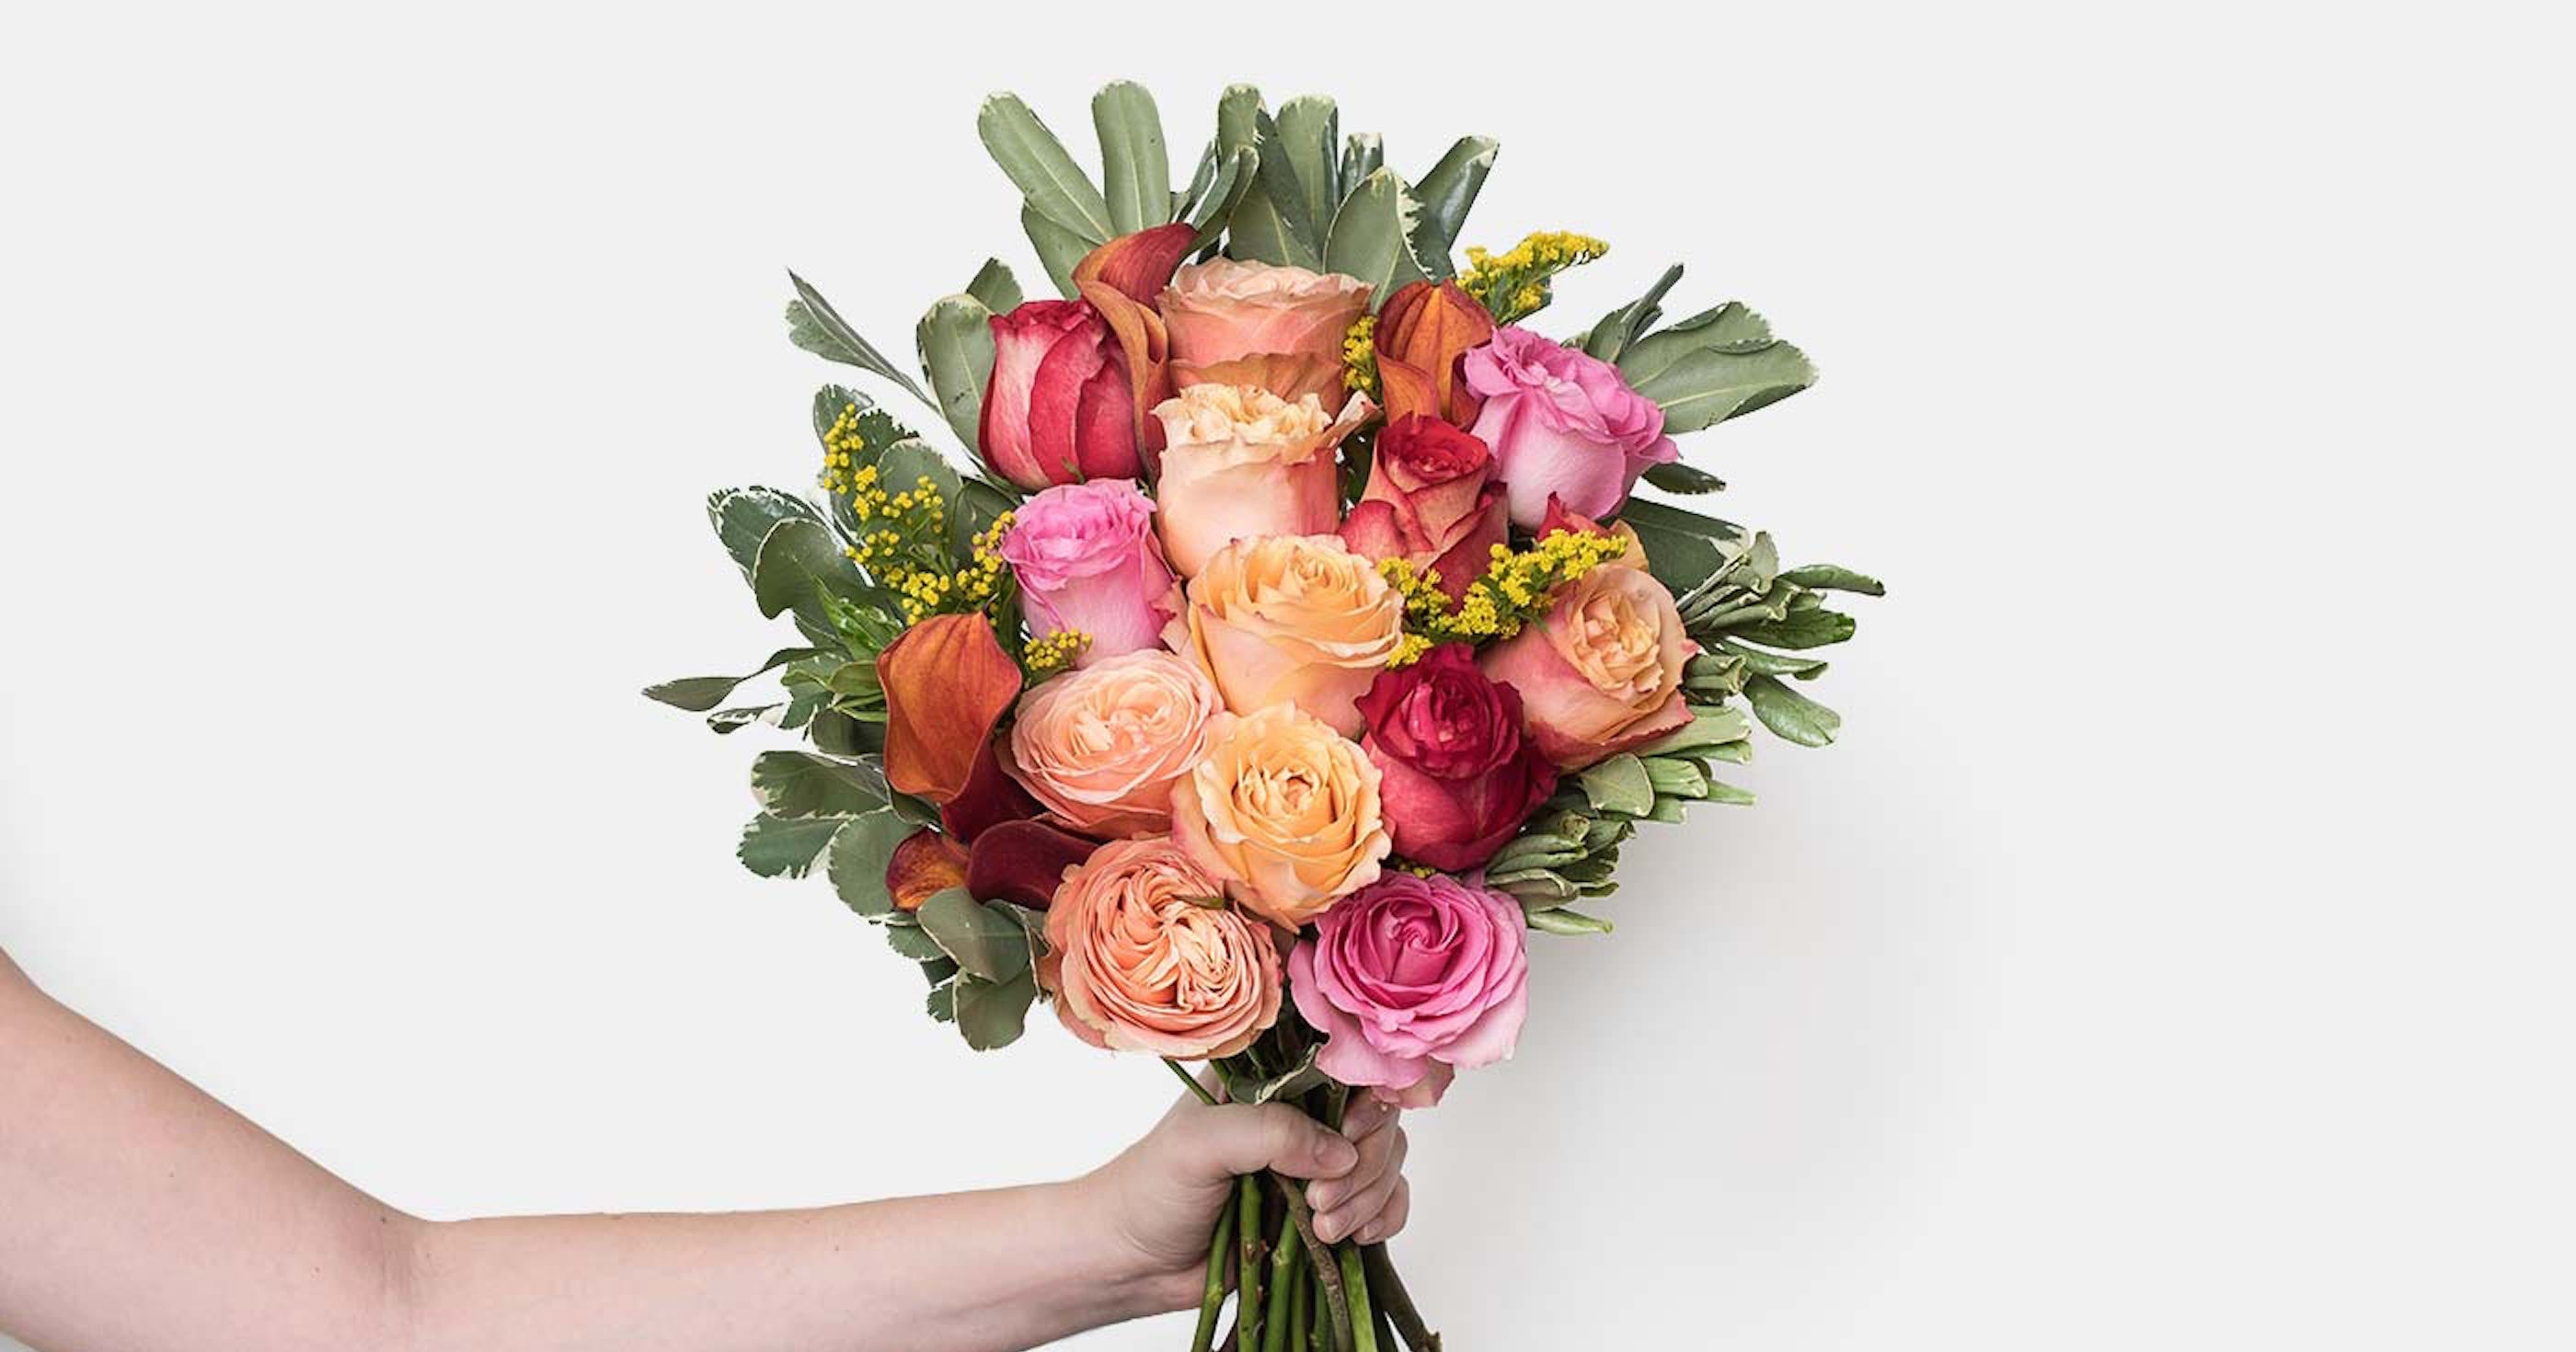 Same Day Flower Delivery Shops For Mothers Day 2018